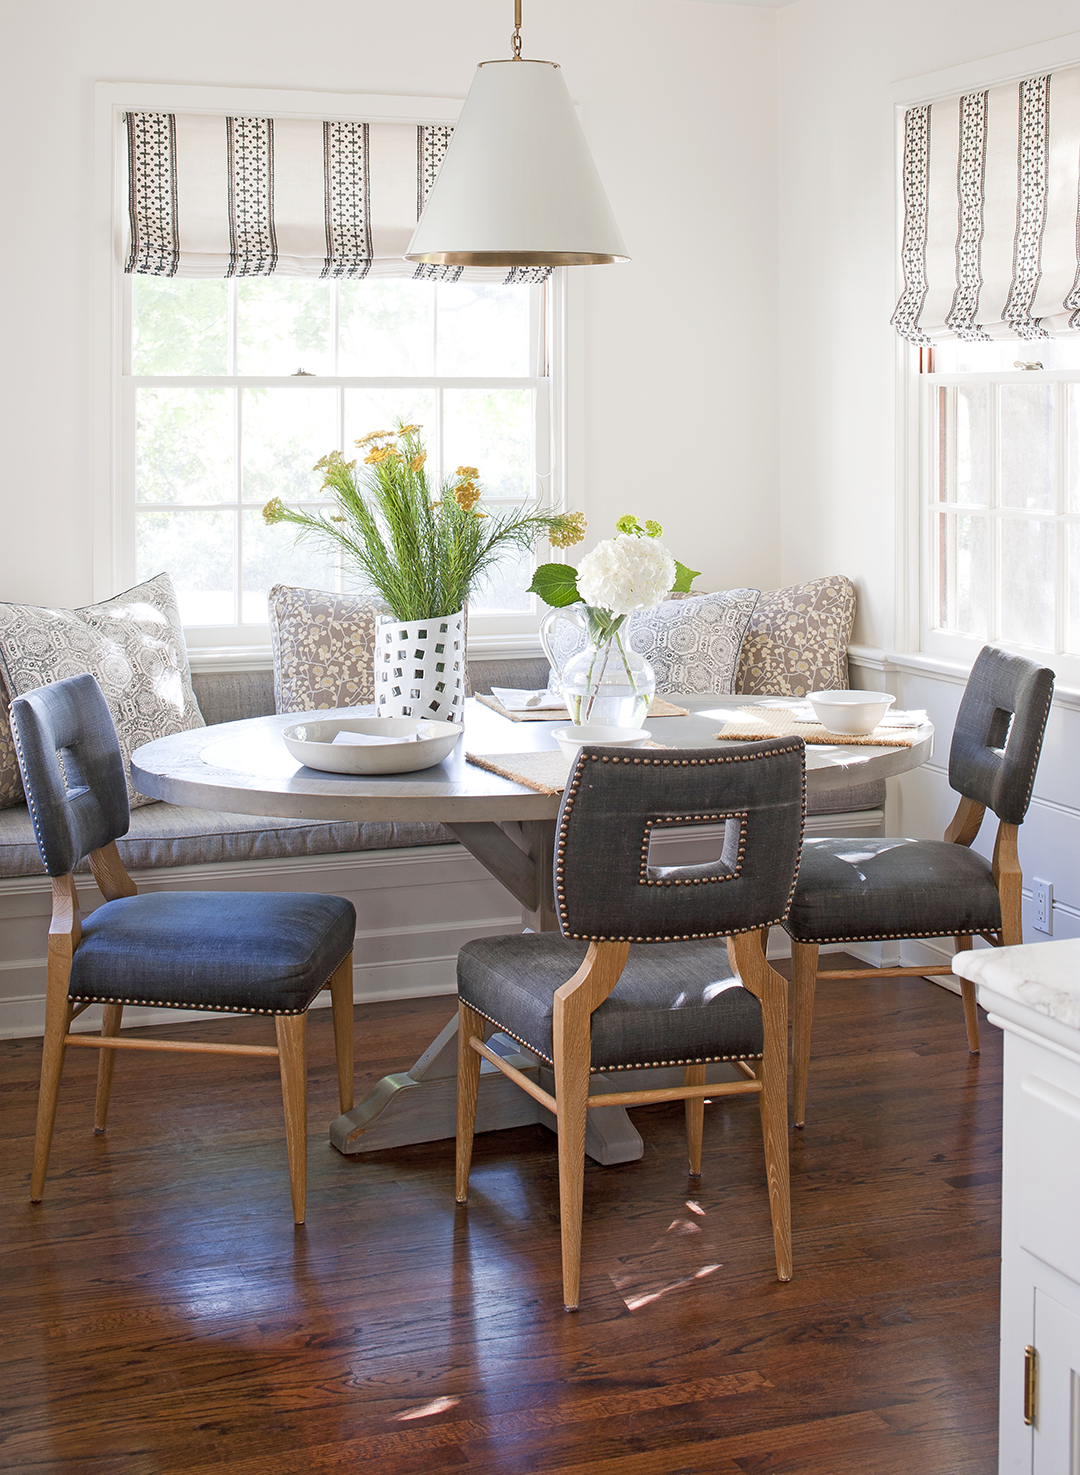 Why Your Kitchen Needs A Built-In Banquette